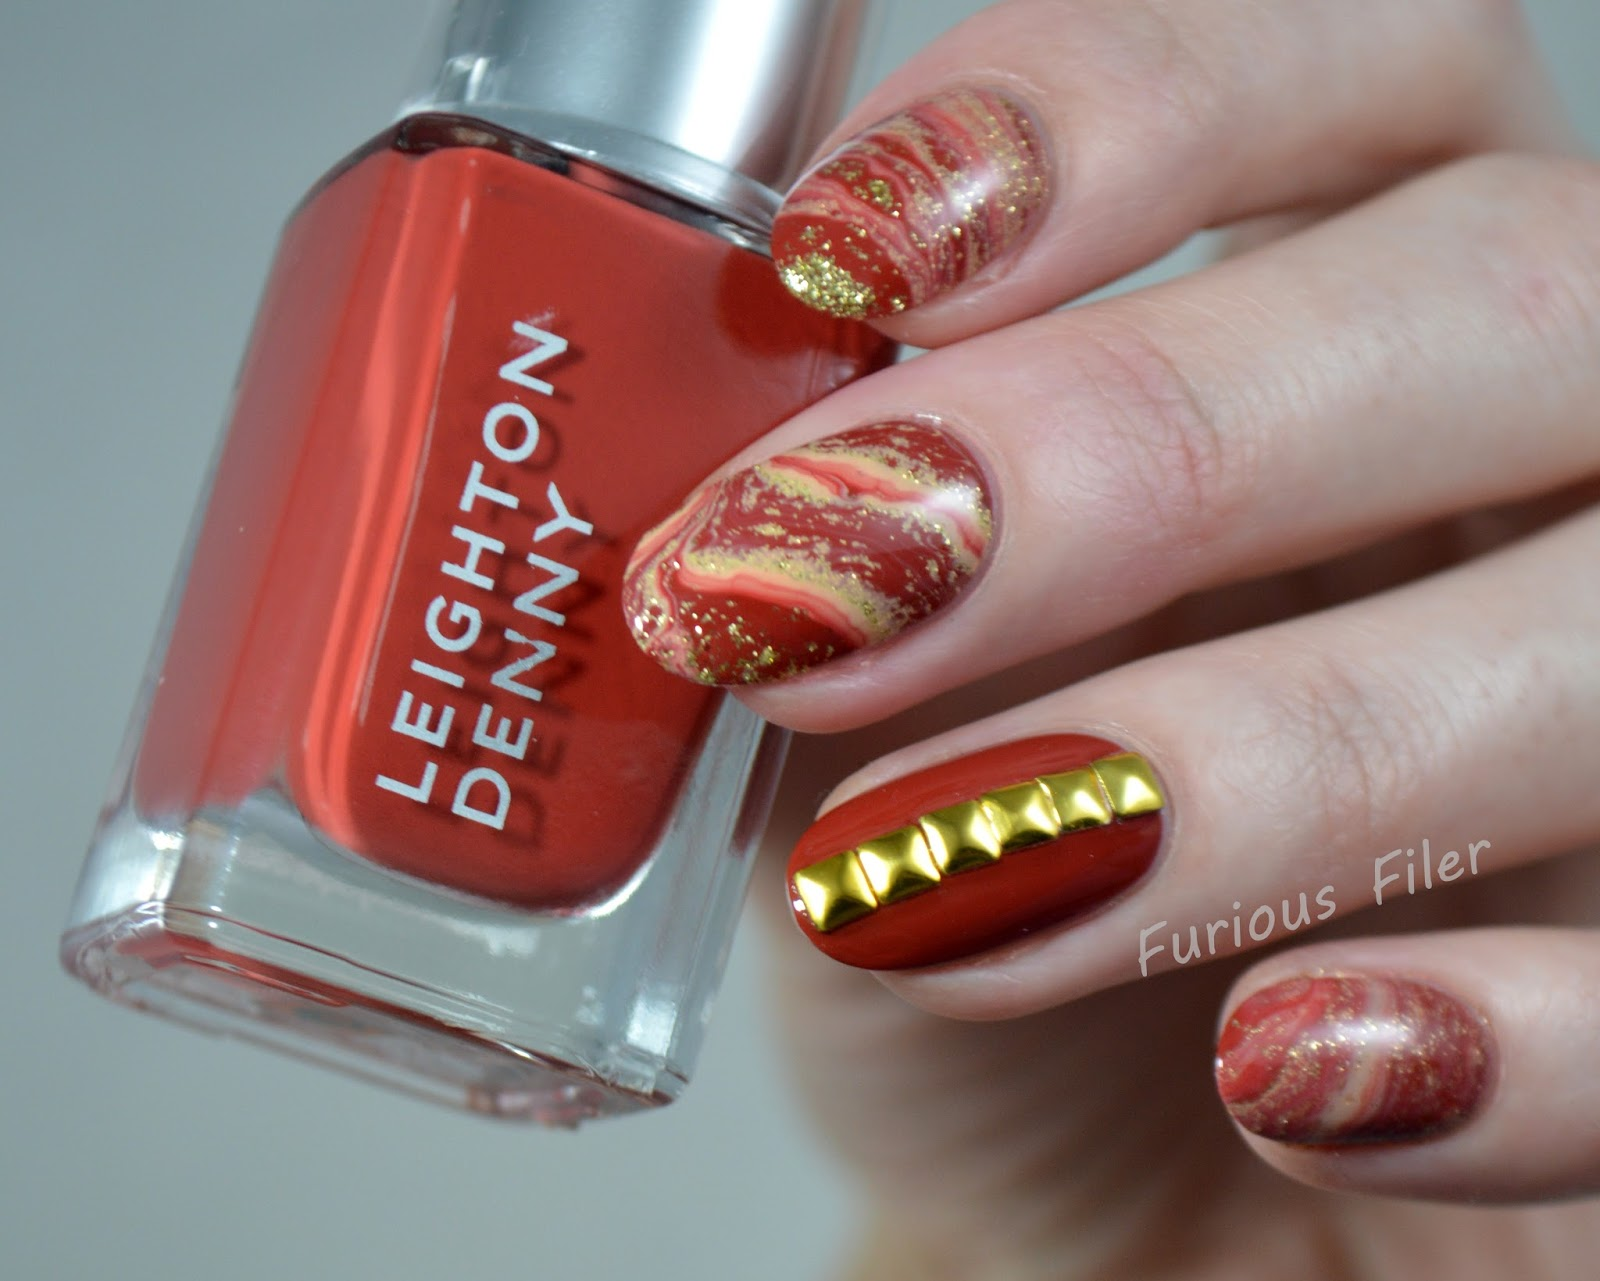 Meebox Red Carpet Nail Art Furious Filer